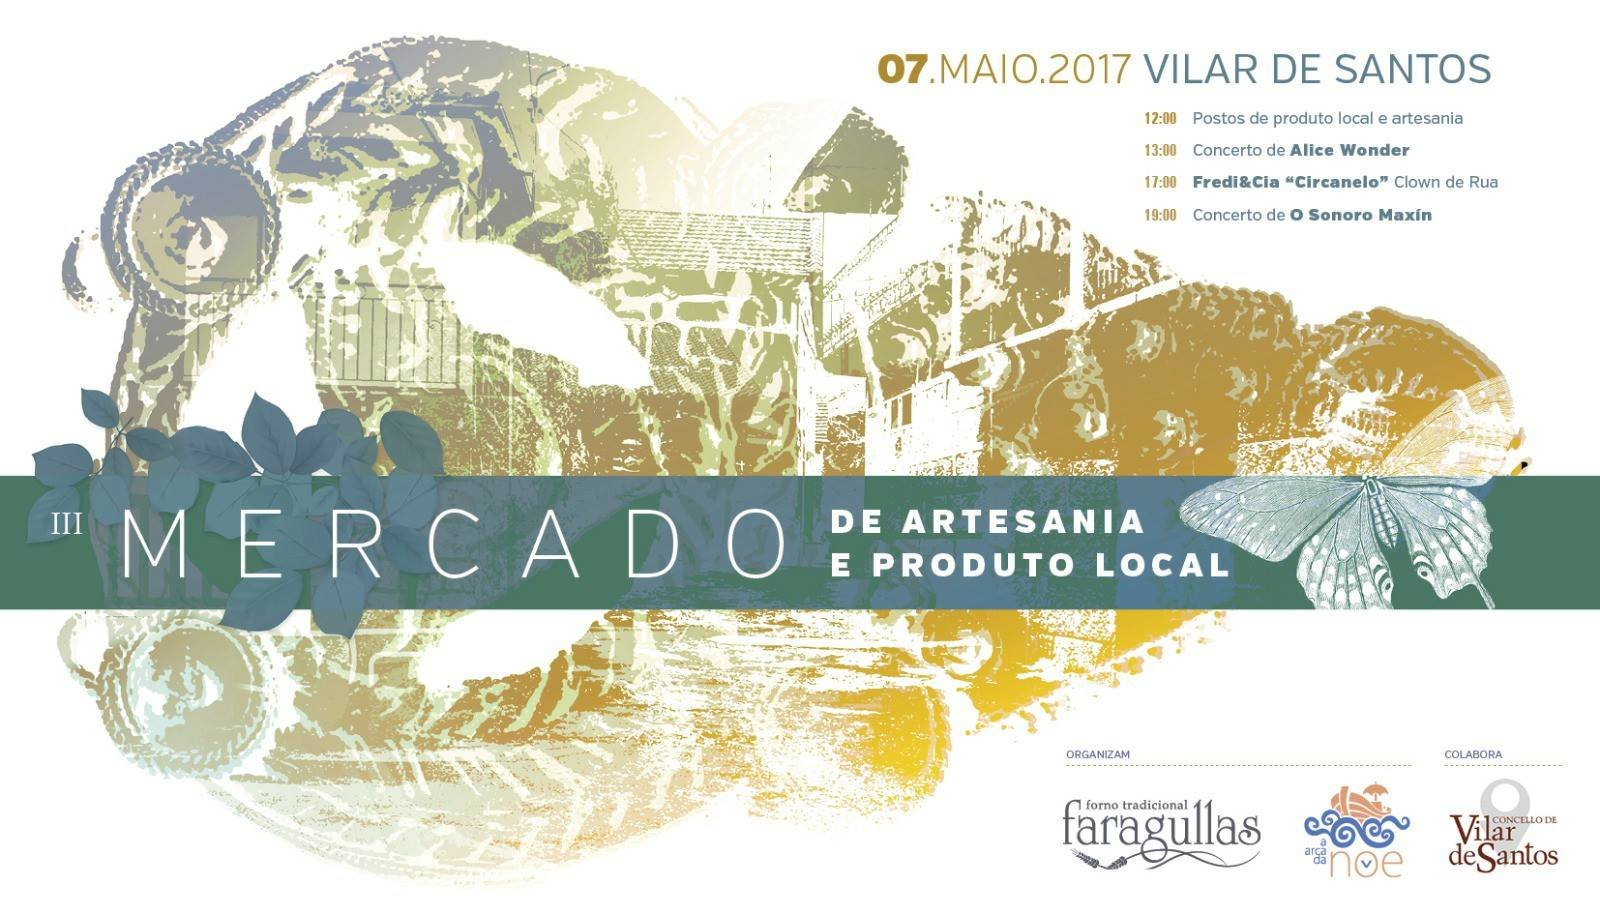 Terceira edición do Mercado de Artesanía e Produto Local de Vilar de Santos